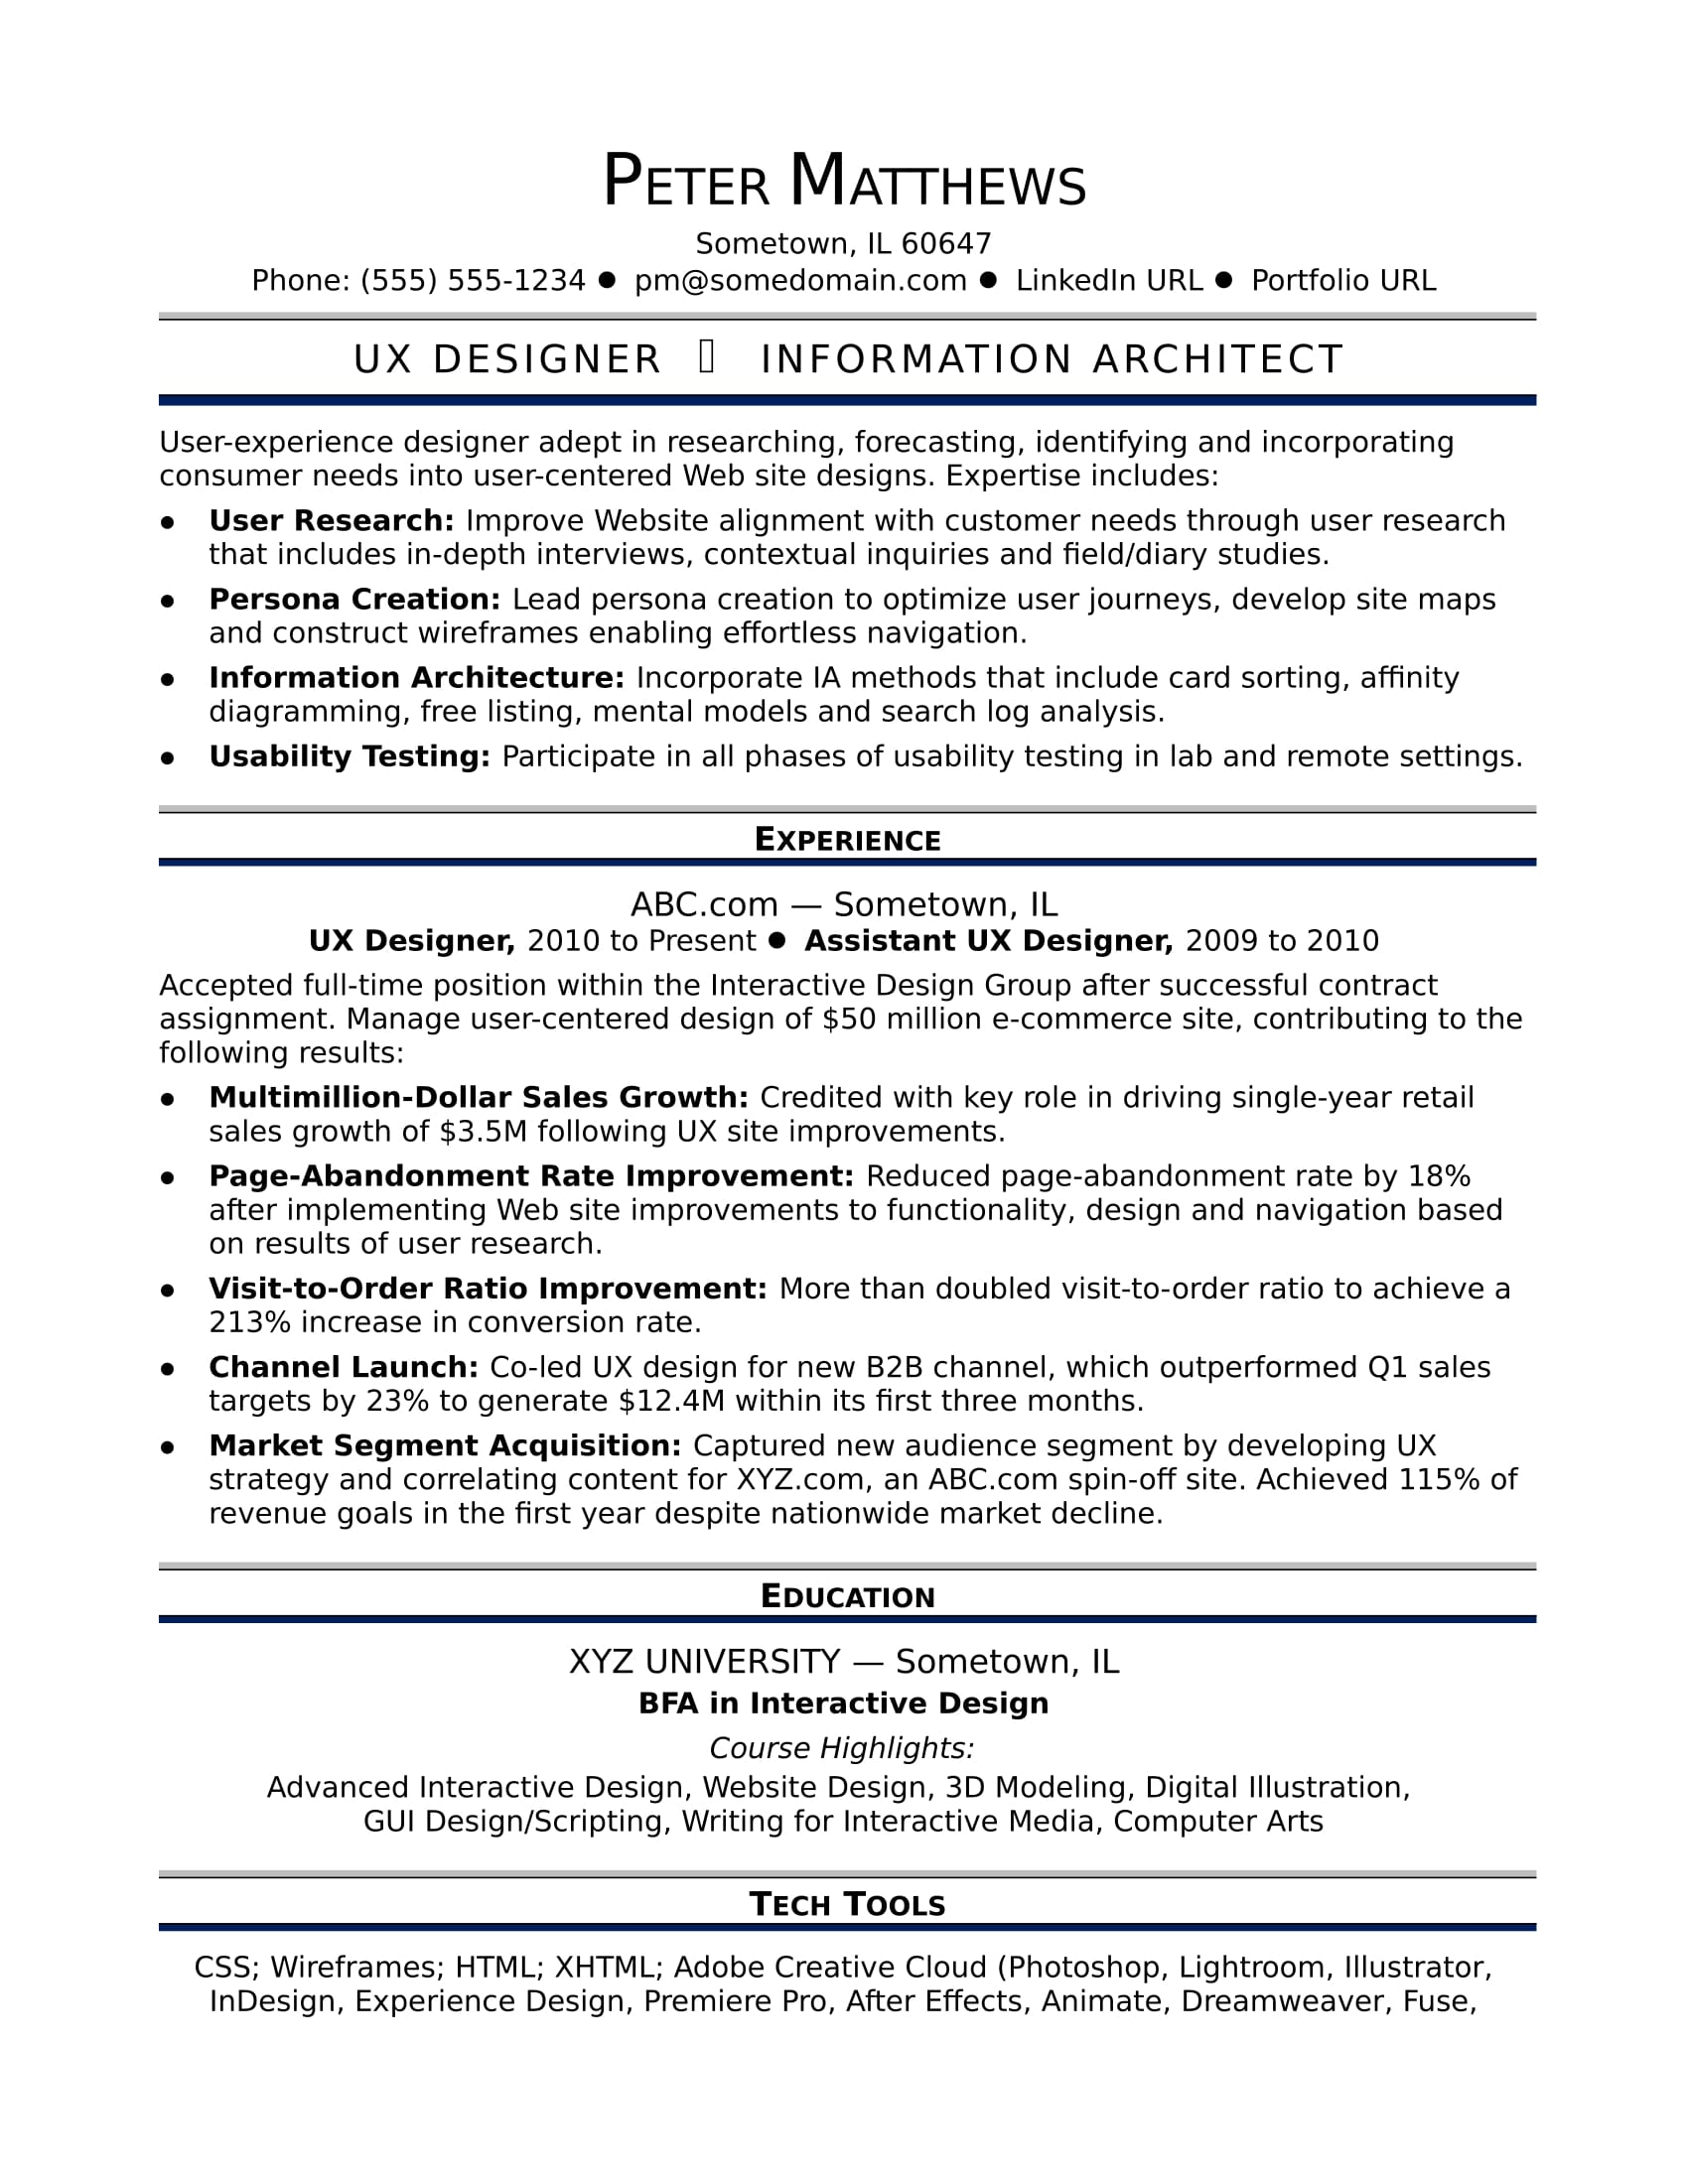 sample resume for a midlevel ux designer